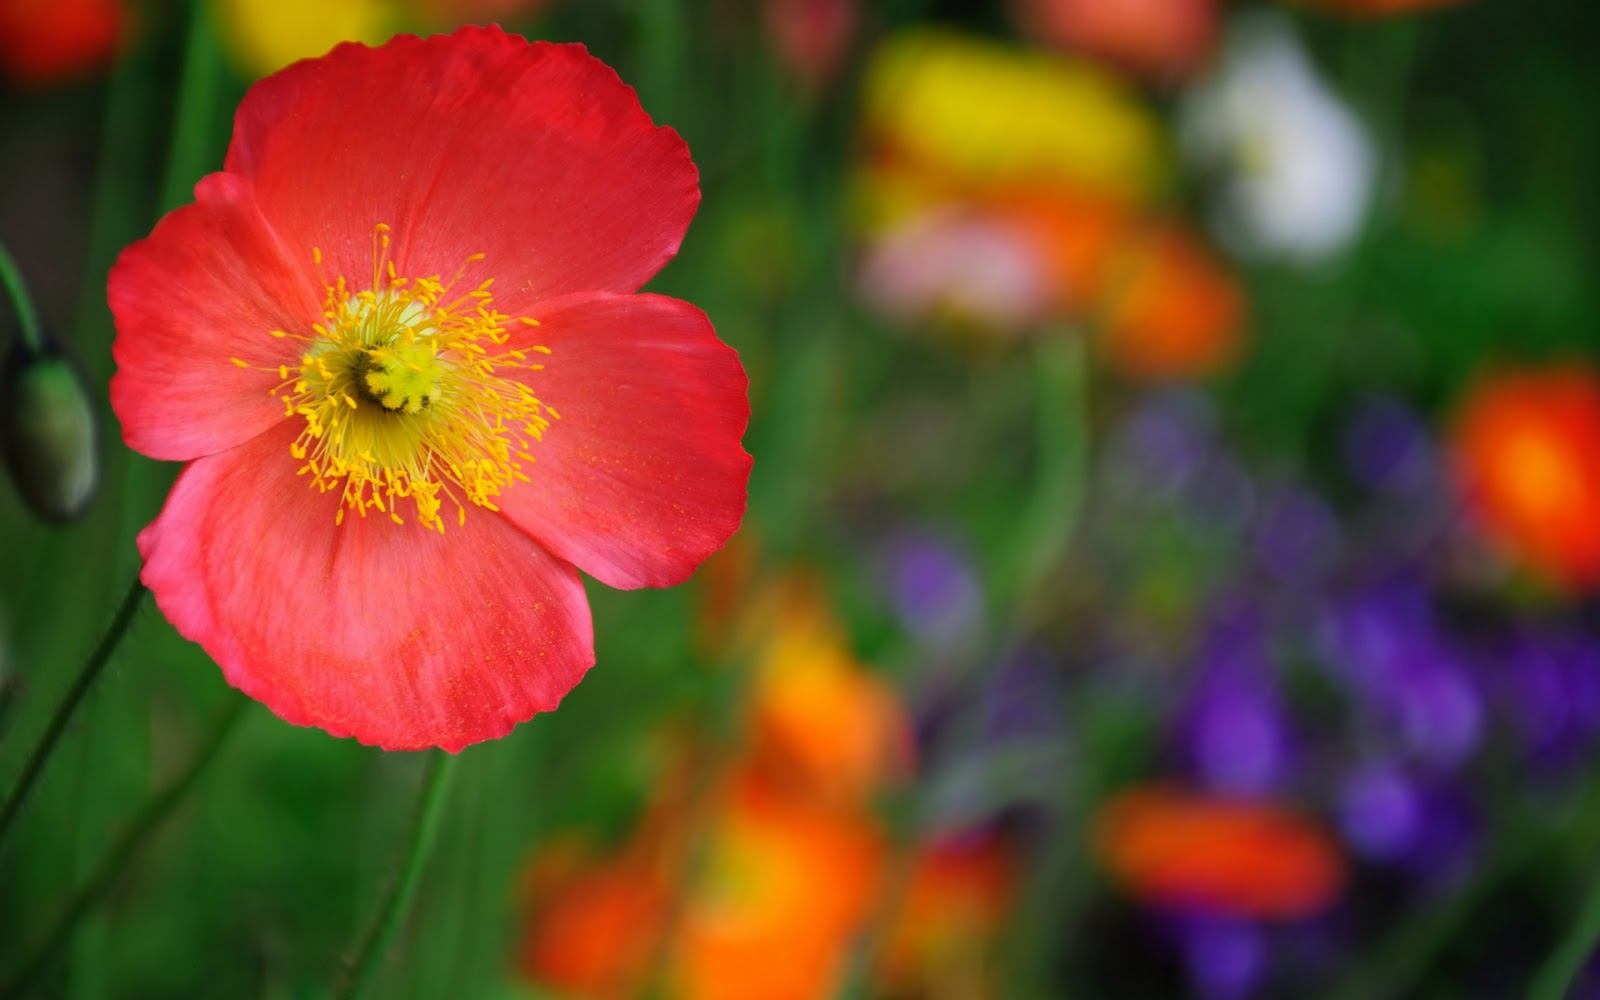 http://2.bp.blogspot.com/-wEFFsHLIe_I/TuwrvIci1nI/AAAAAAAAD0c/88Ud8B2YORY/s1600/Varieties_poppy_-_high_quality_desktop_wallpaper.jpg